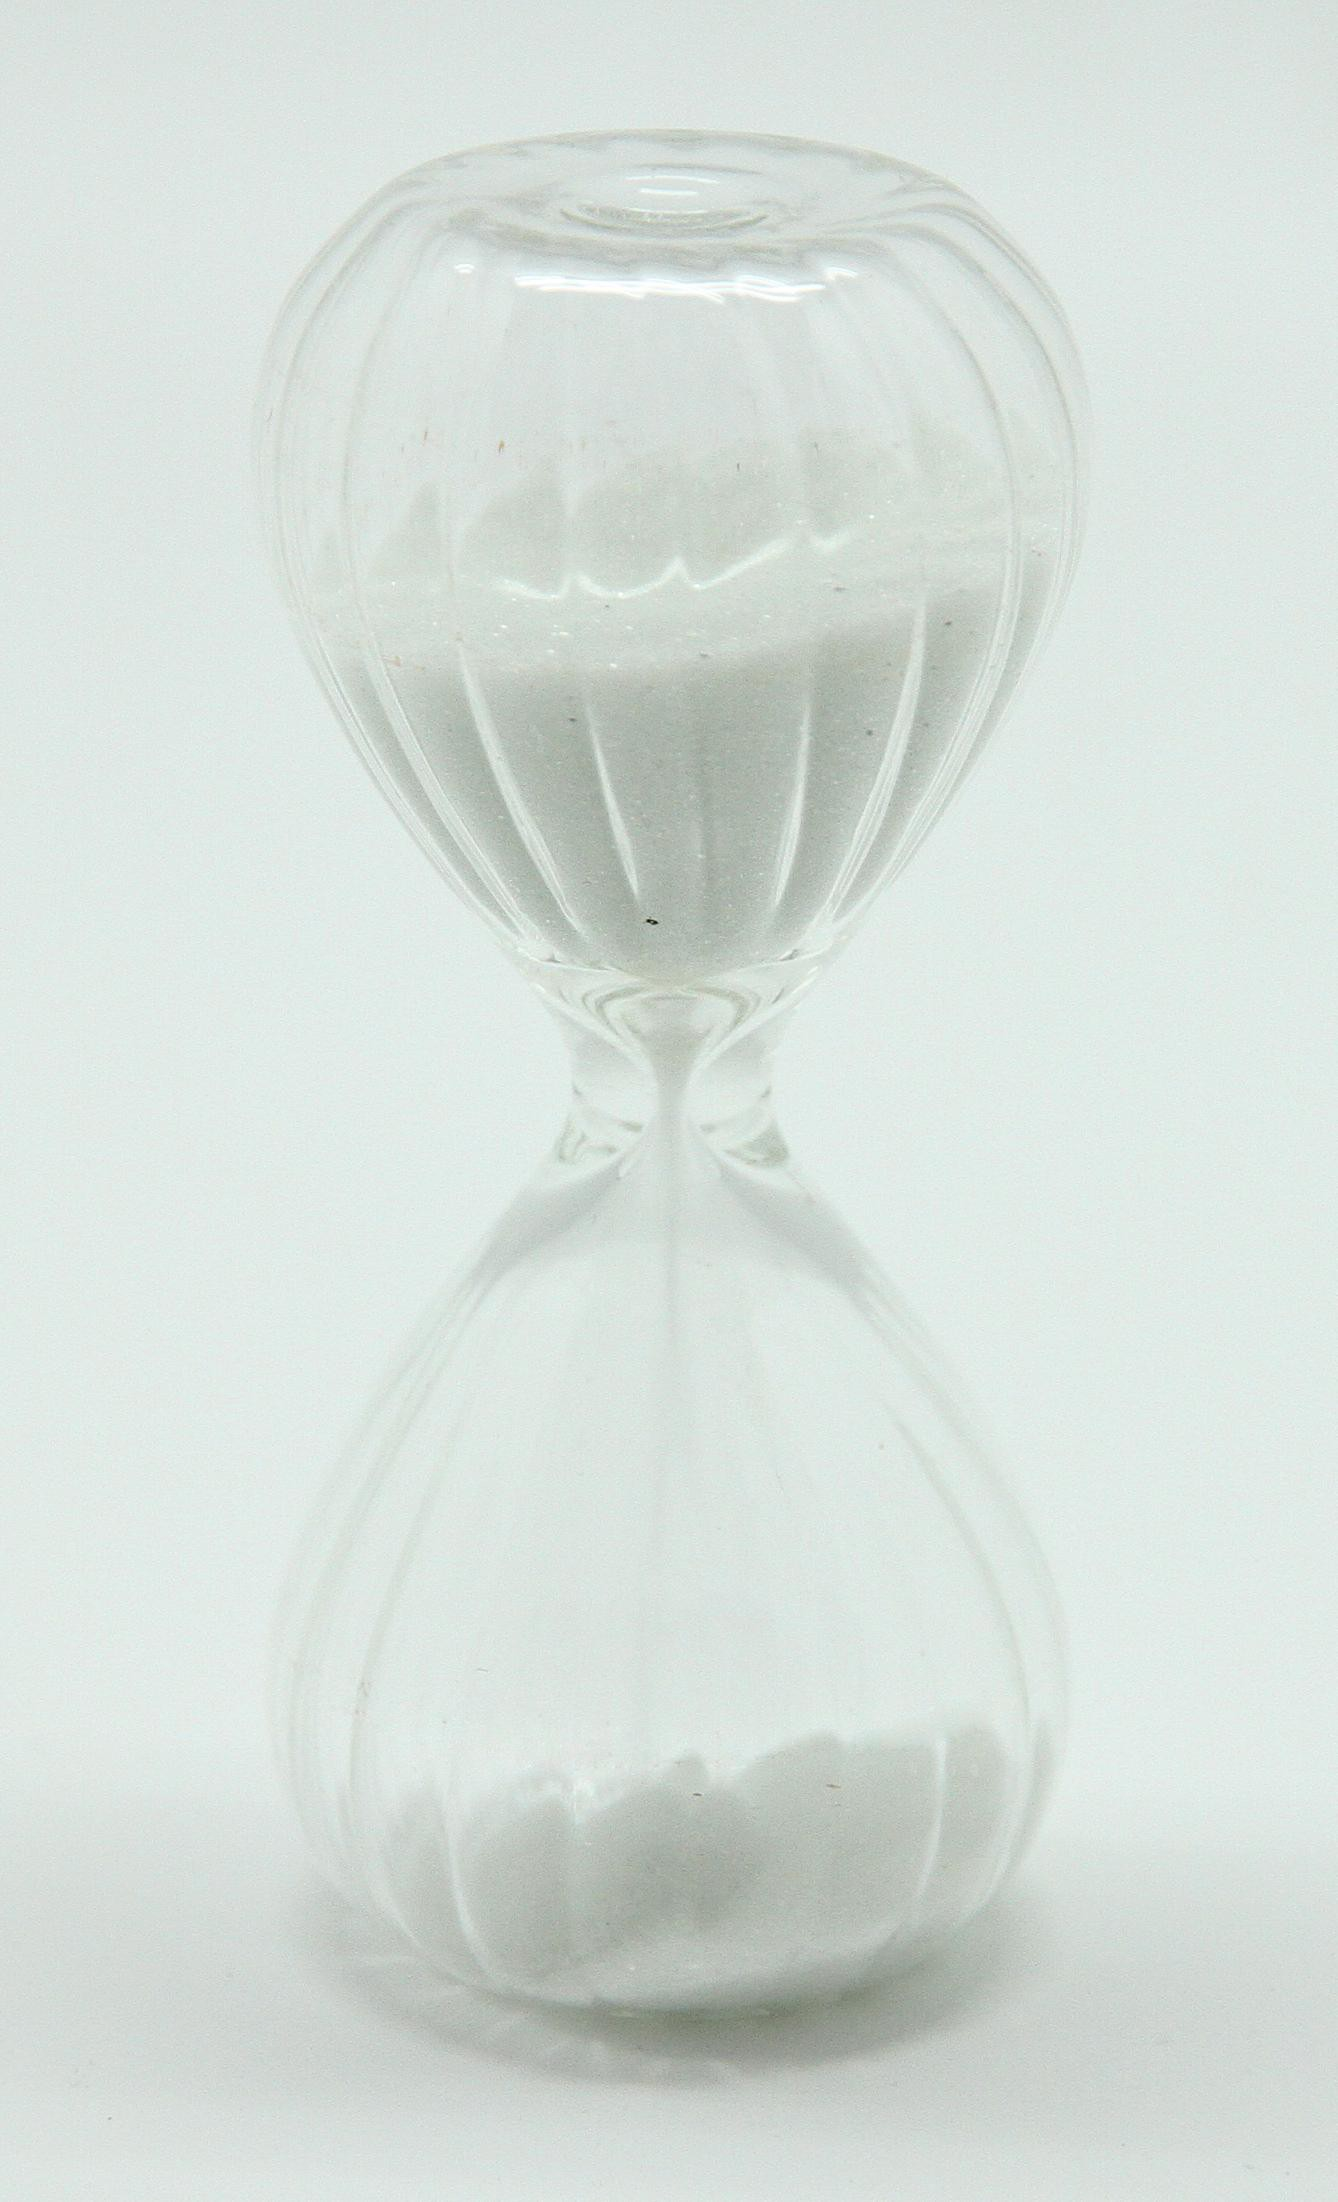 #ATD10 - 10 Minute Glass Sand Timer